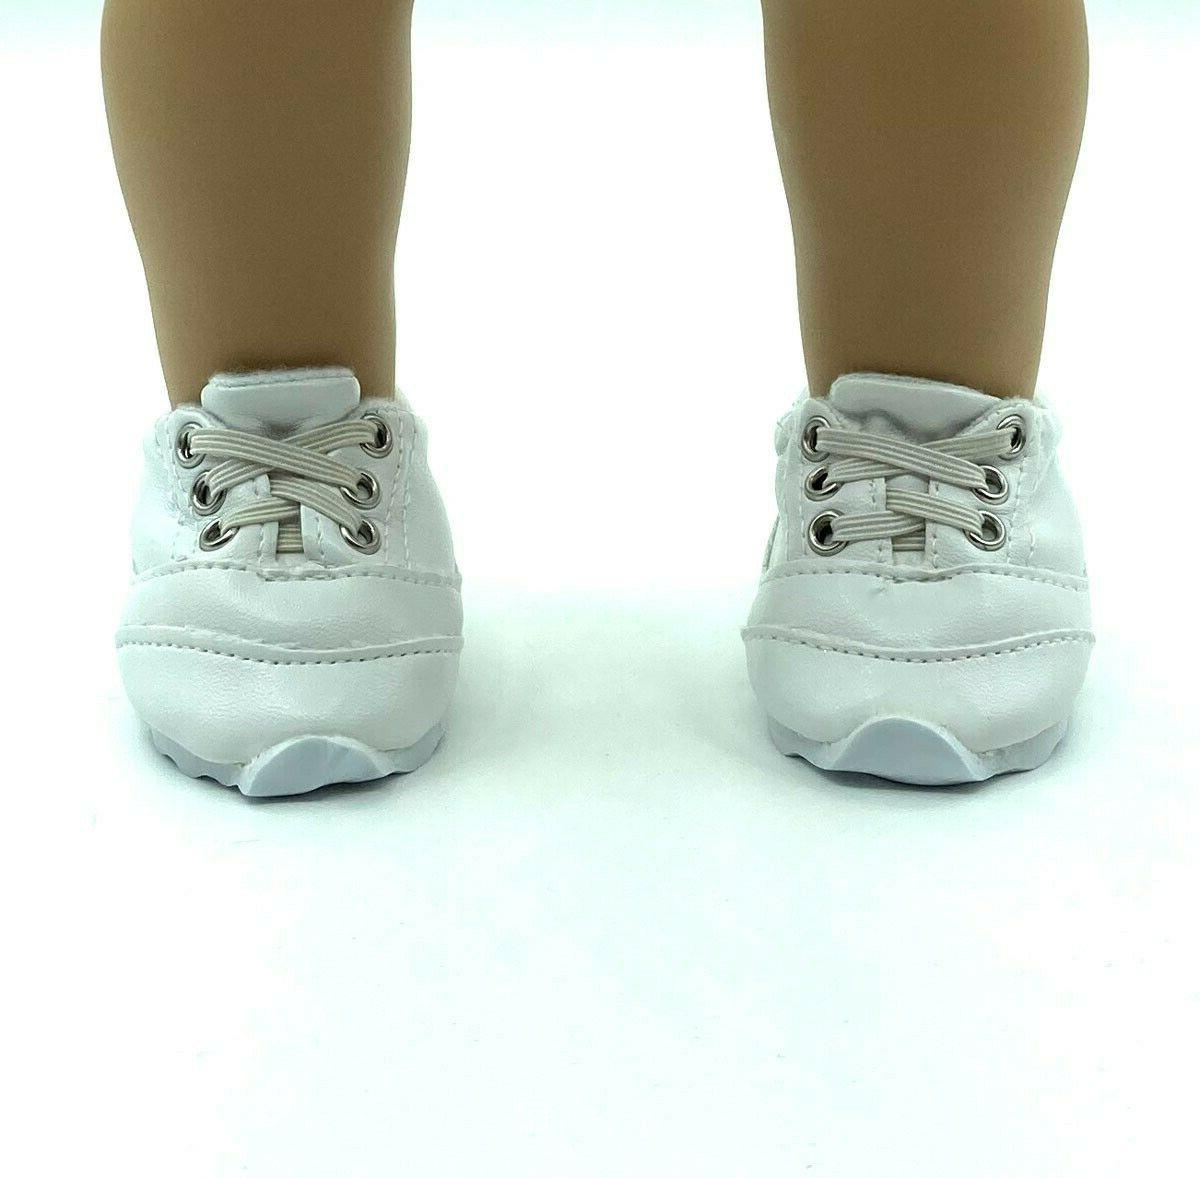 18 inch girl doll clothes shoes white